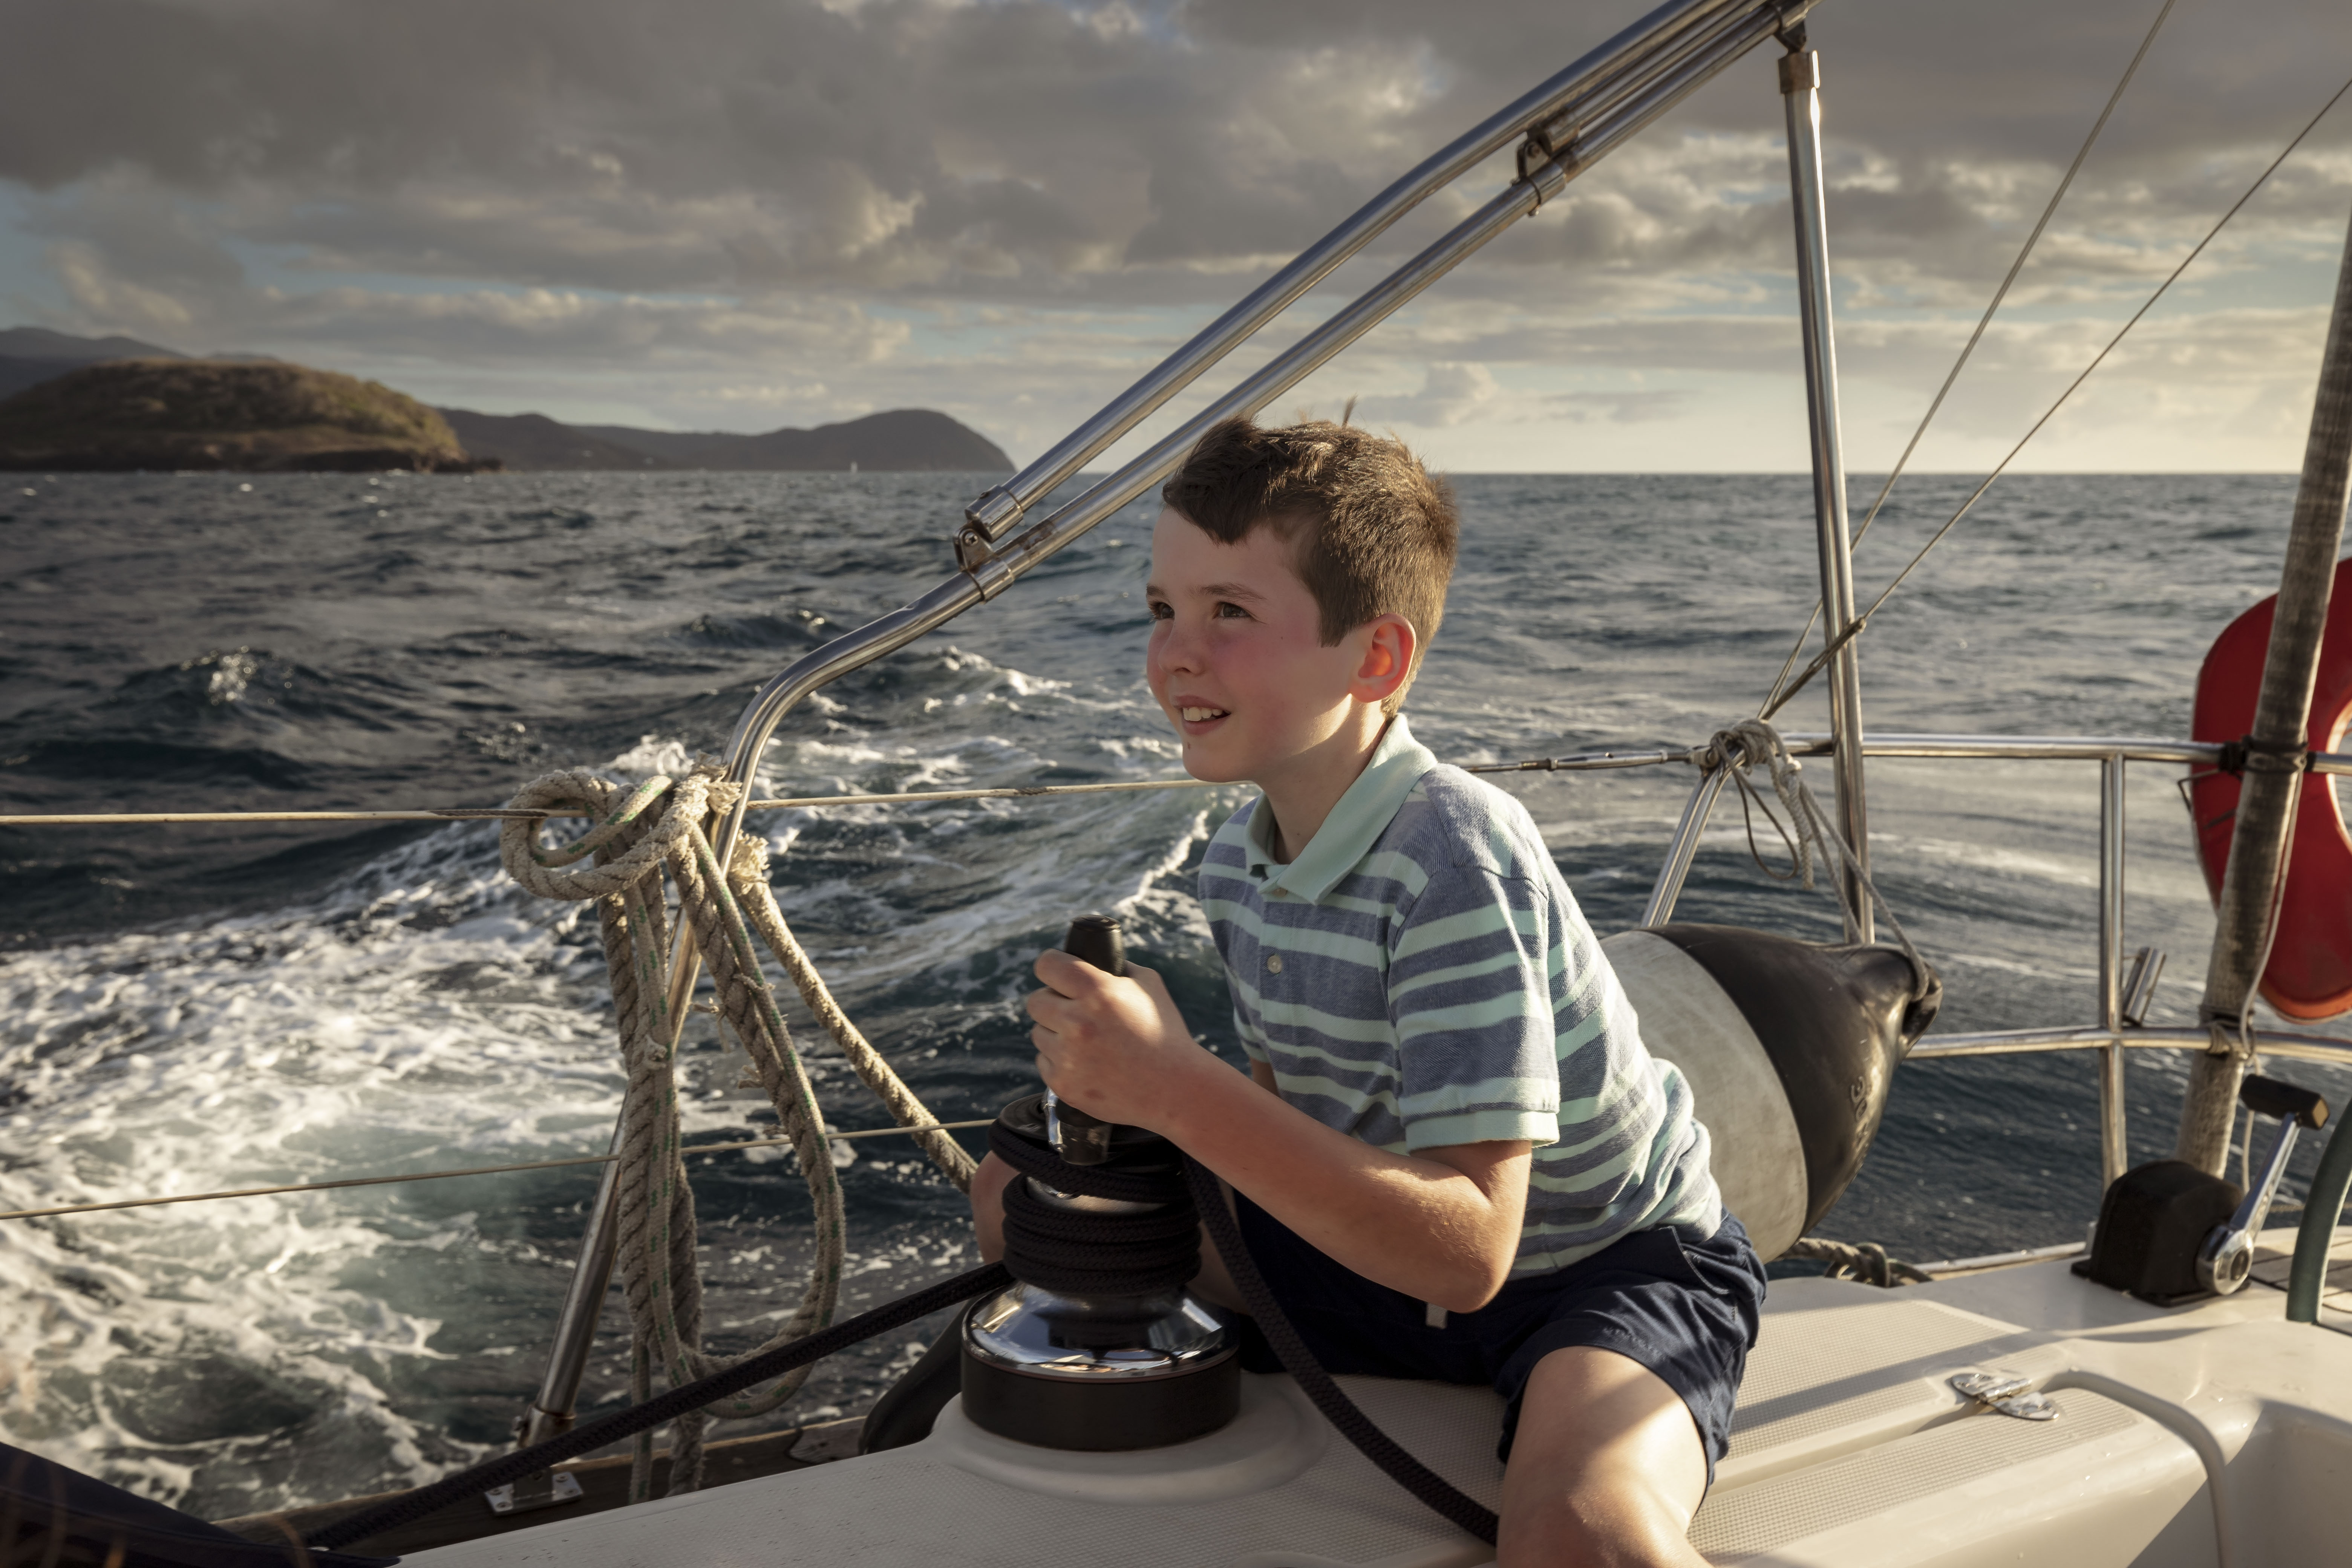 Young Sailor by Michael Osborne